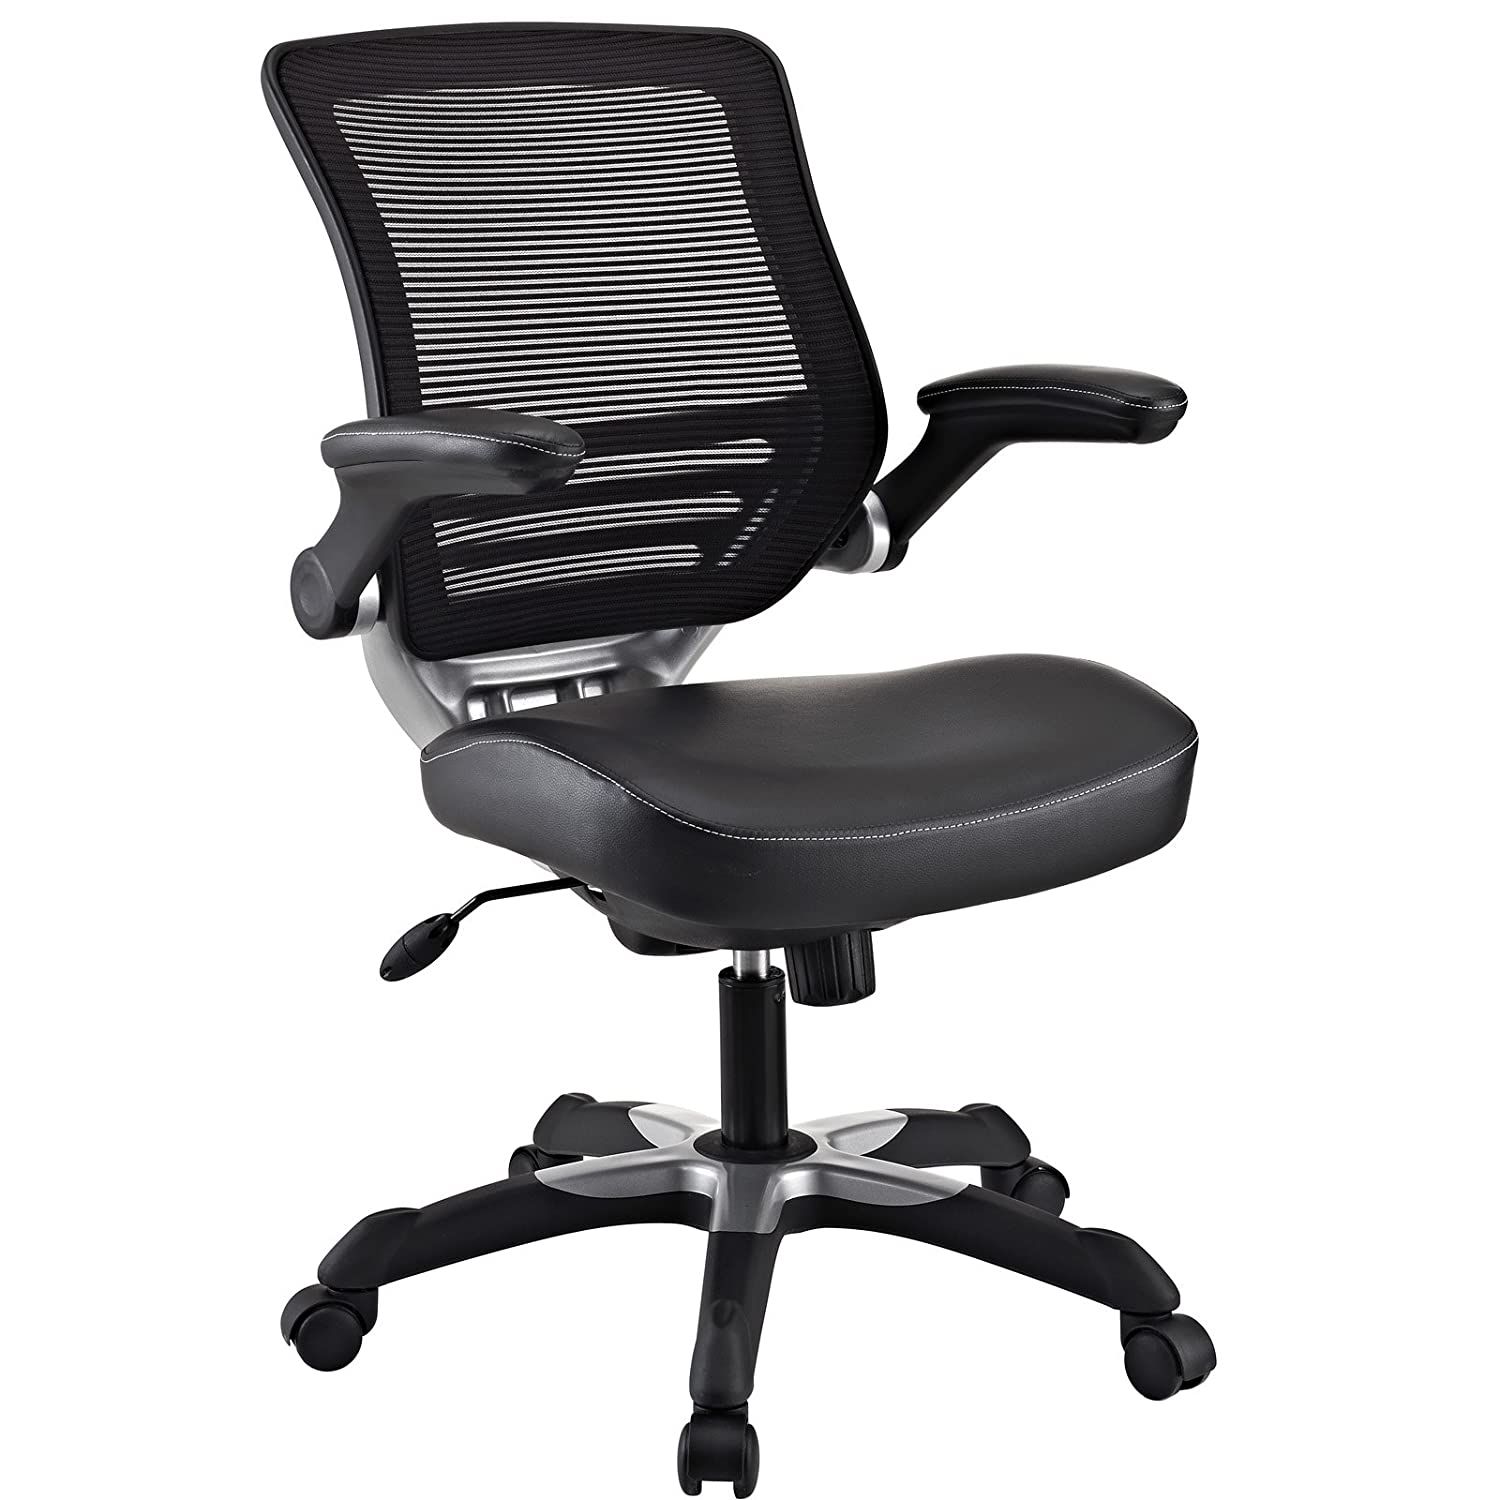 Comfy Office Chair Best Comfortable Office Chair In The Market 2015